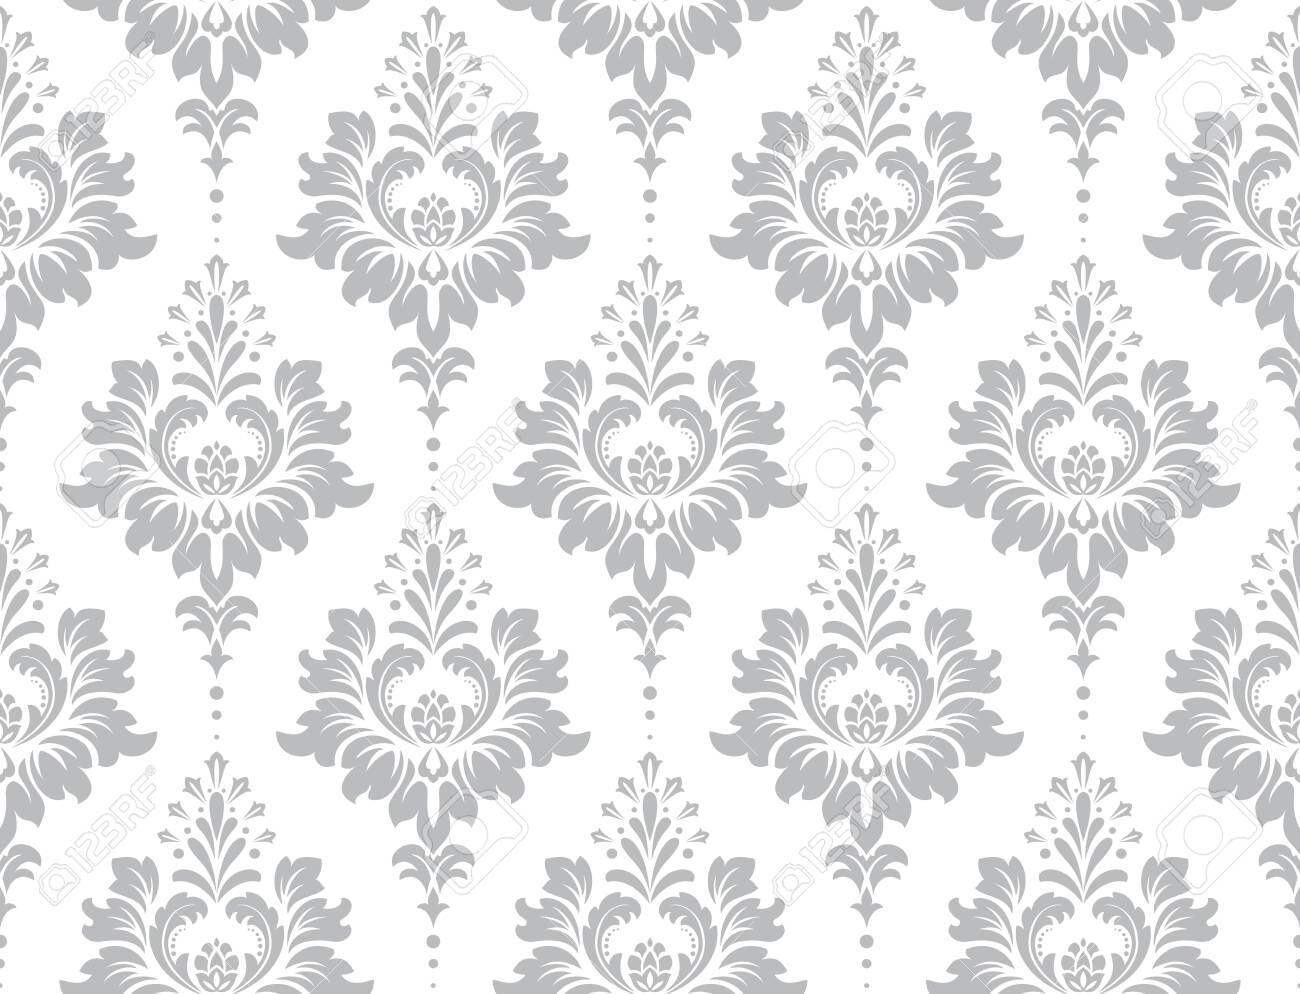 Wallpaper in the style of Baroque. Seamless vector background. White and grey floral ornament. Graphic pattern for fabric, wallpaper, packaging. Ornate Damask flower ornament. - 133435251